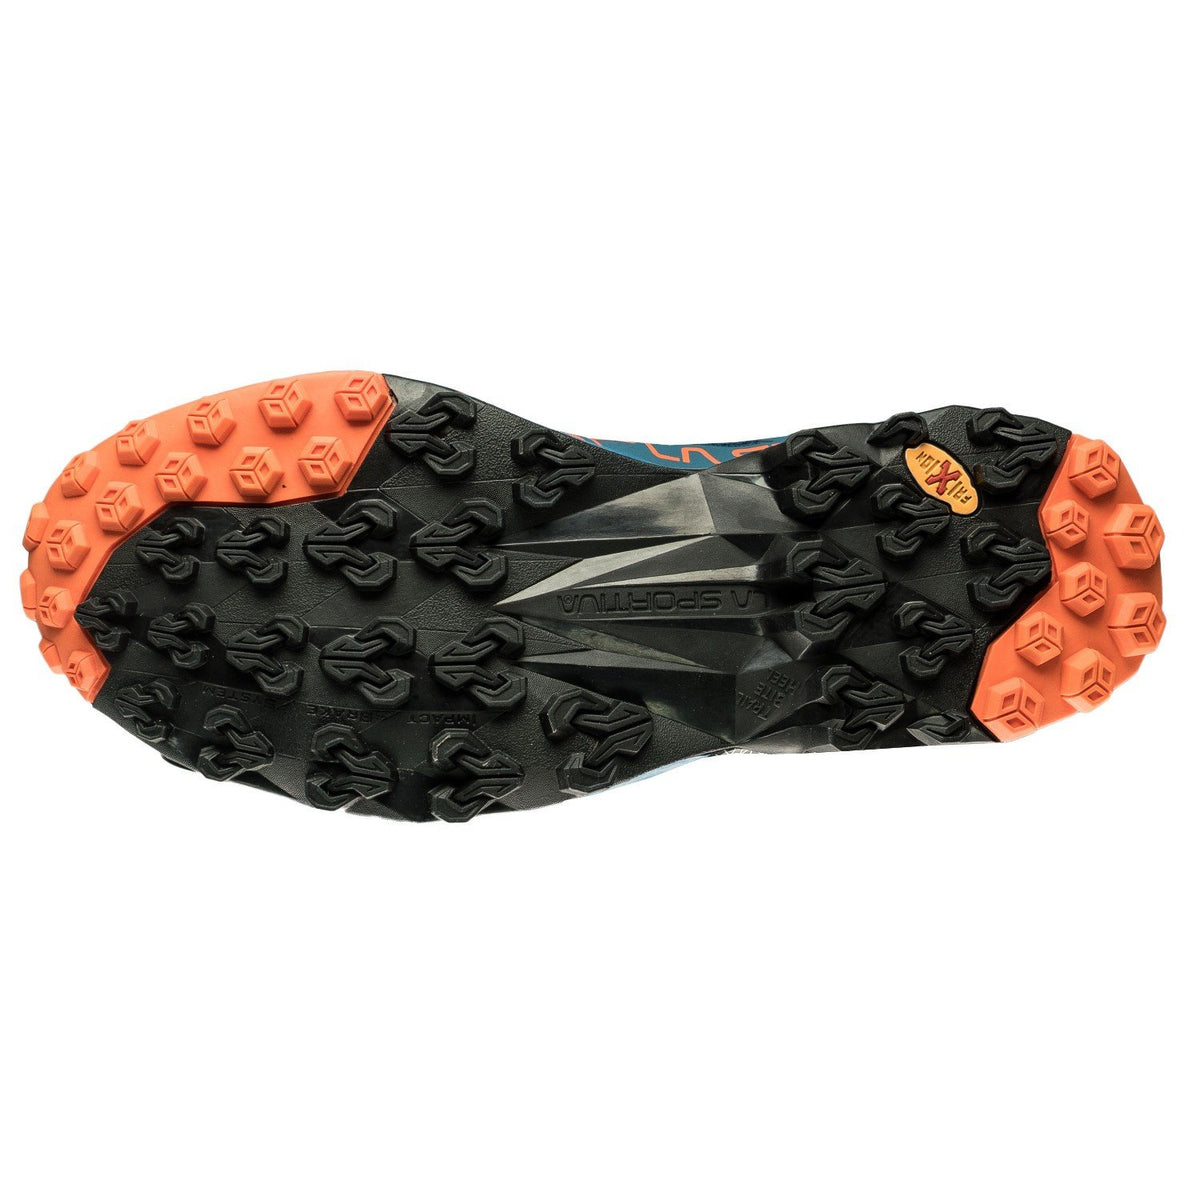 La Sportiva Akyra running shoe, view of the sole